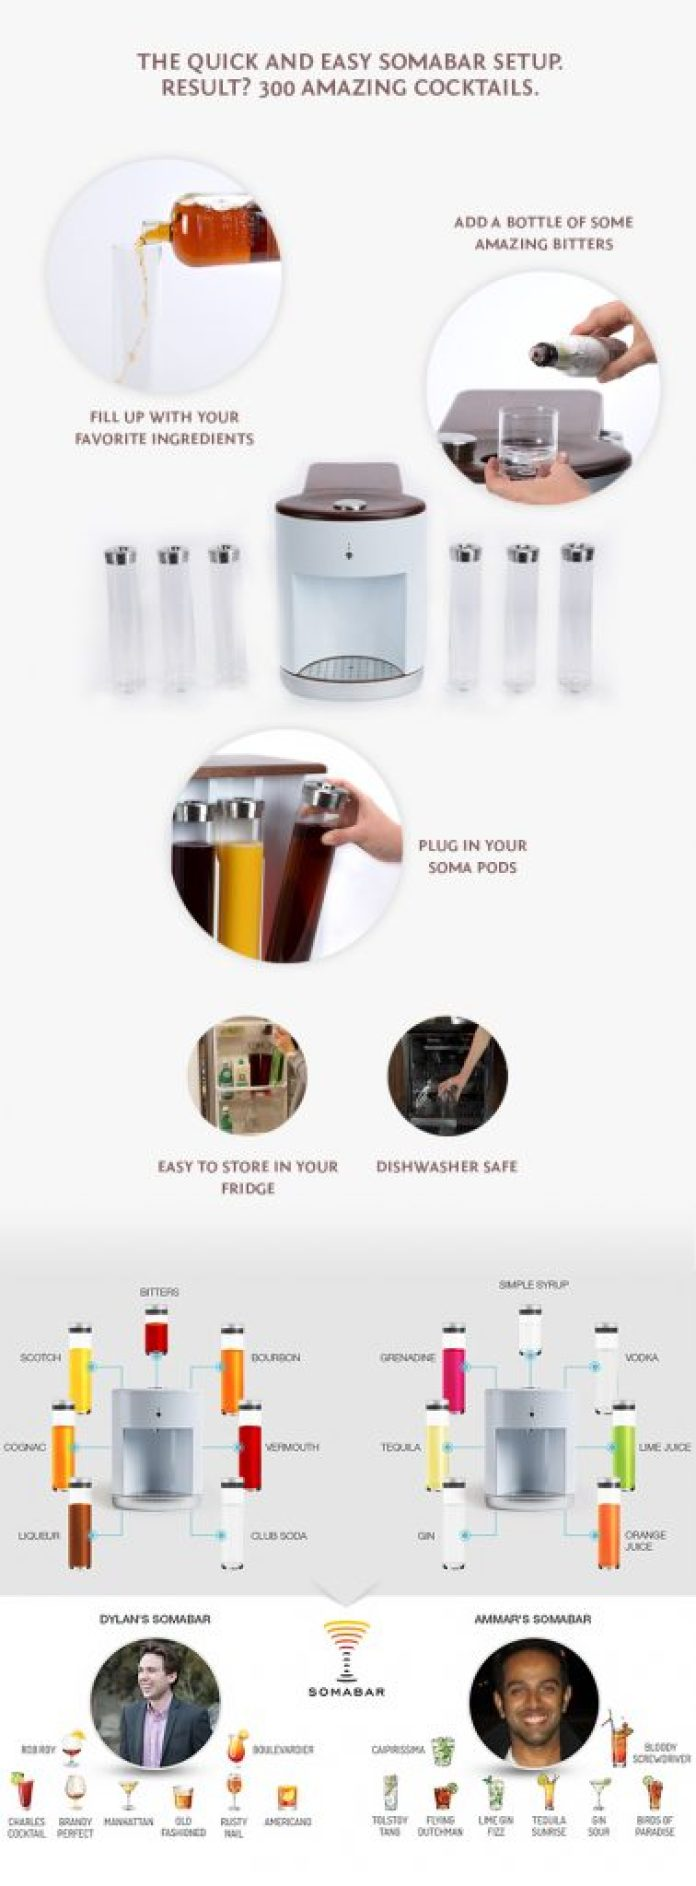 robotic-bartender-controlled-with-smartphone-app-4